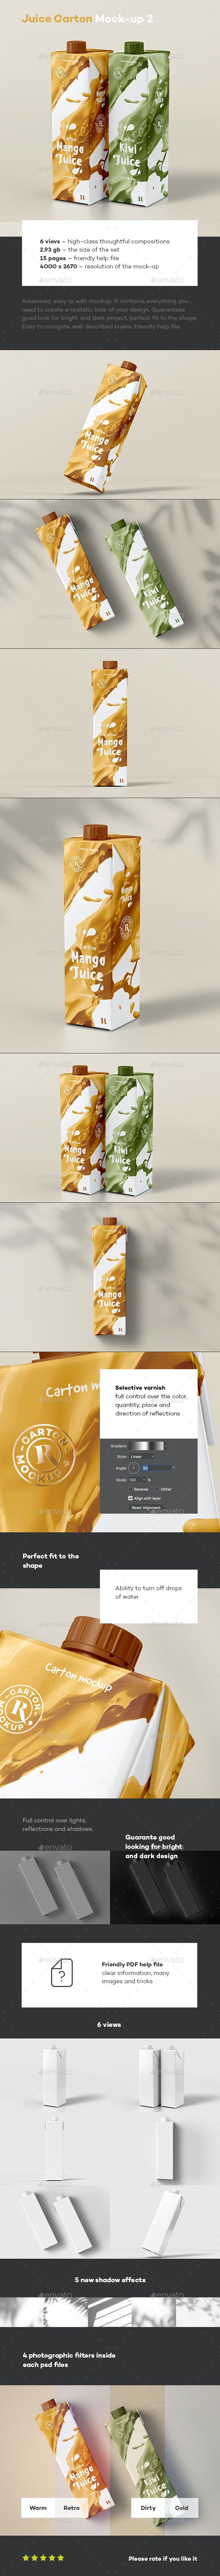 Juice Carton Mock-up 2 - Food and Drink Packaging